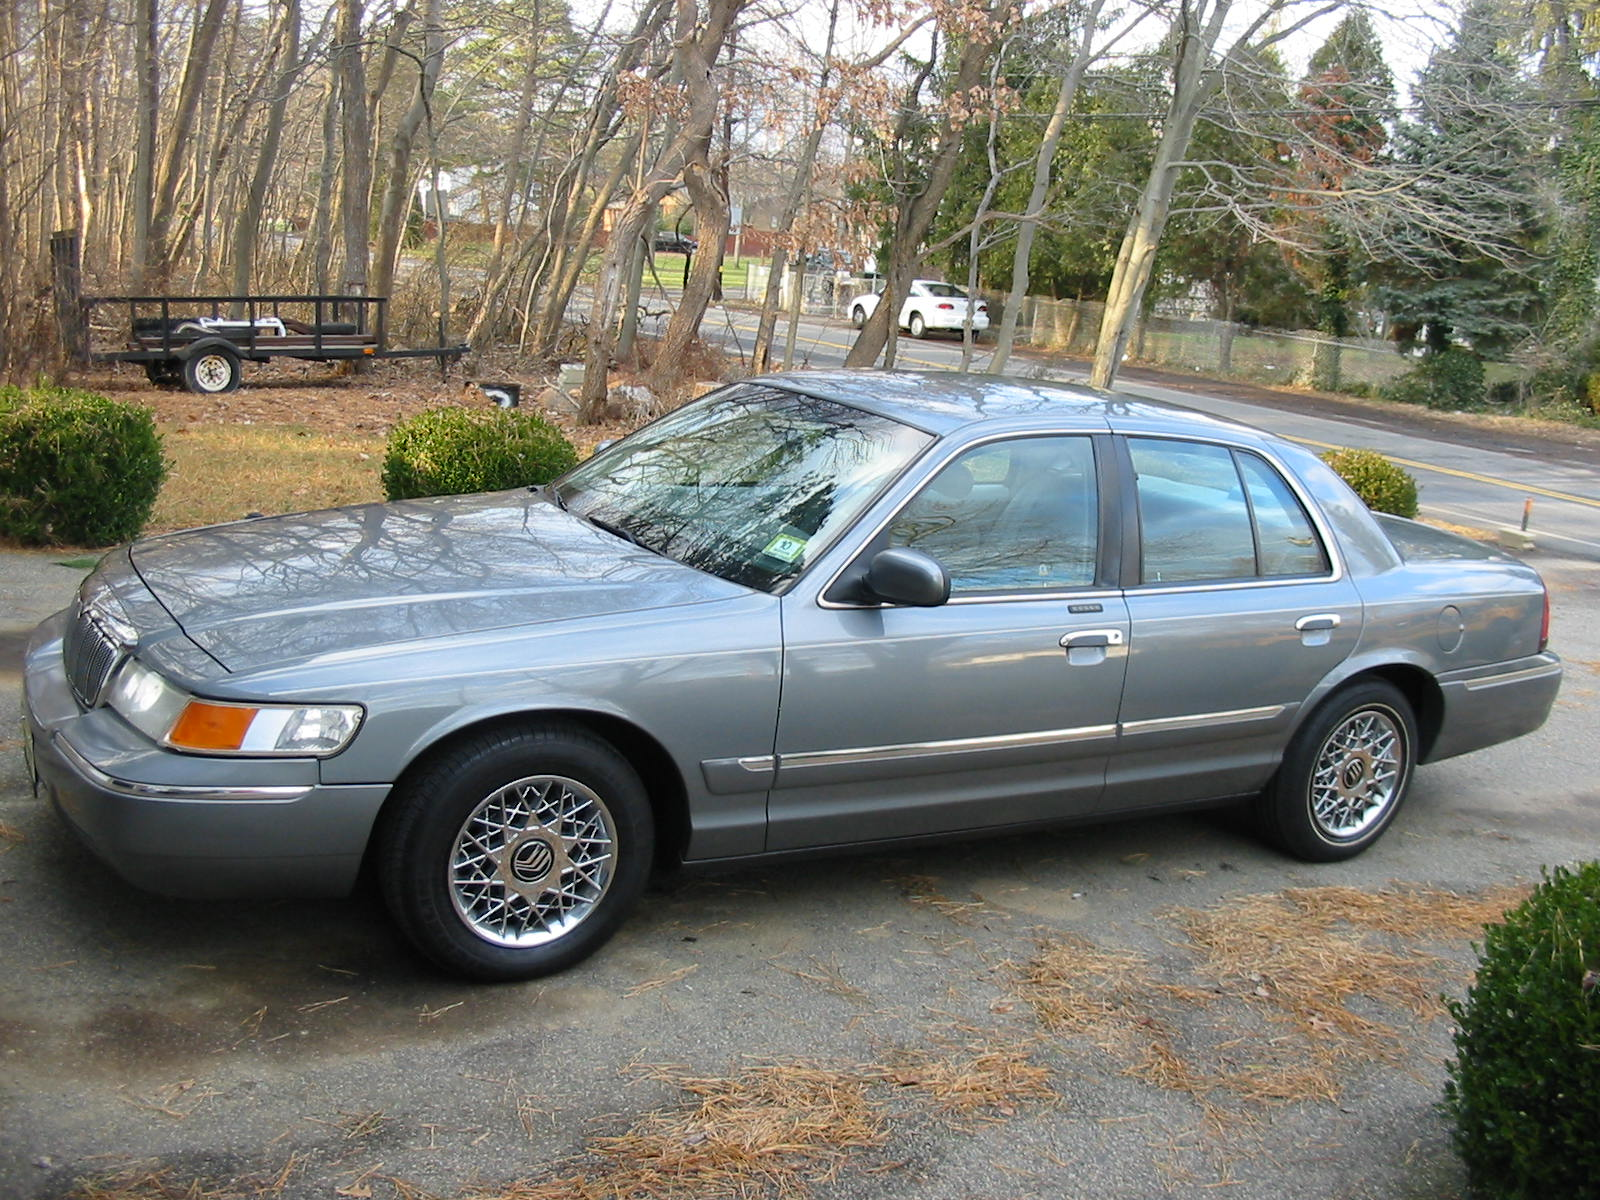 1998 Mercury Grand Marquis 4 Dr GS Sedan picture